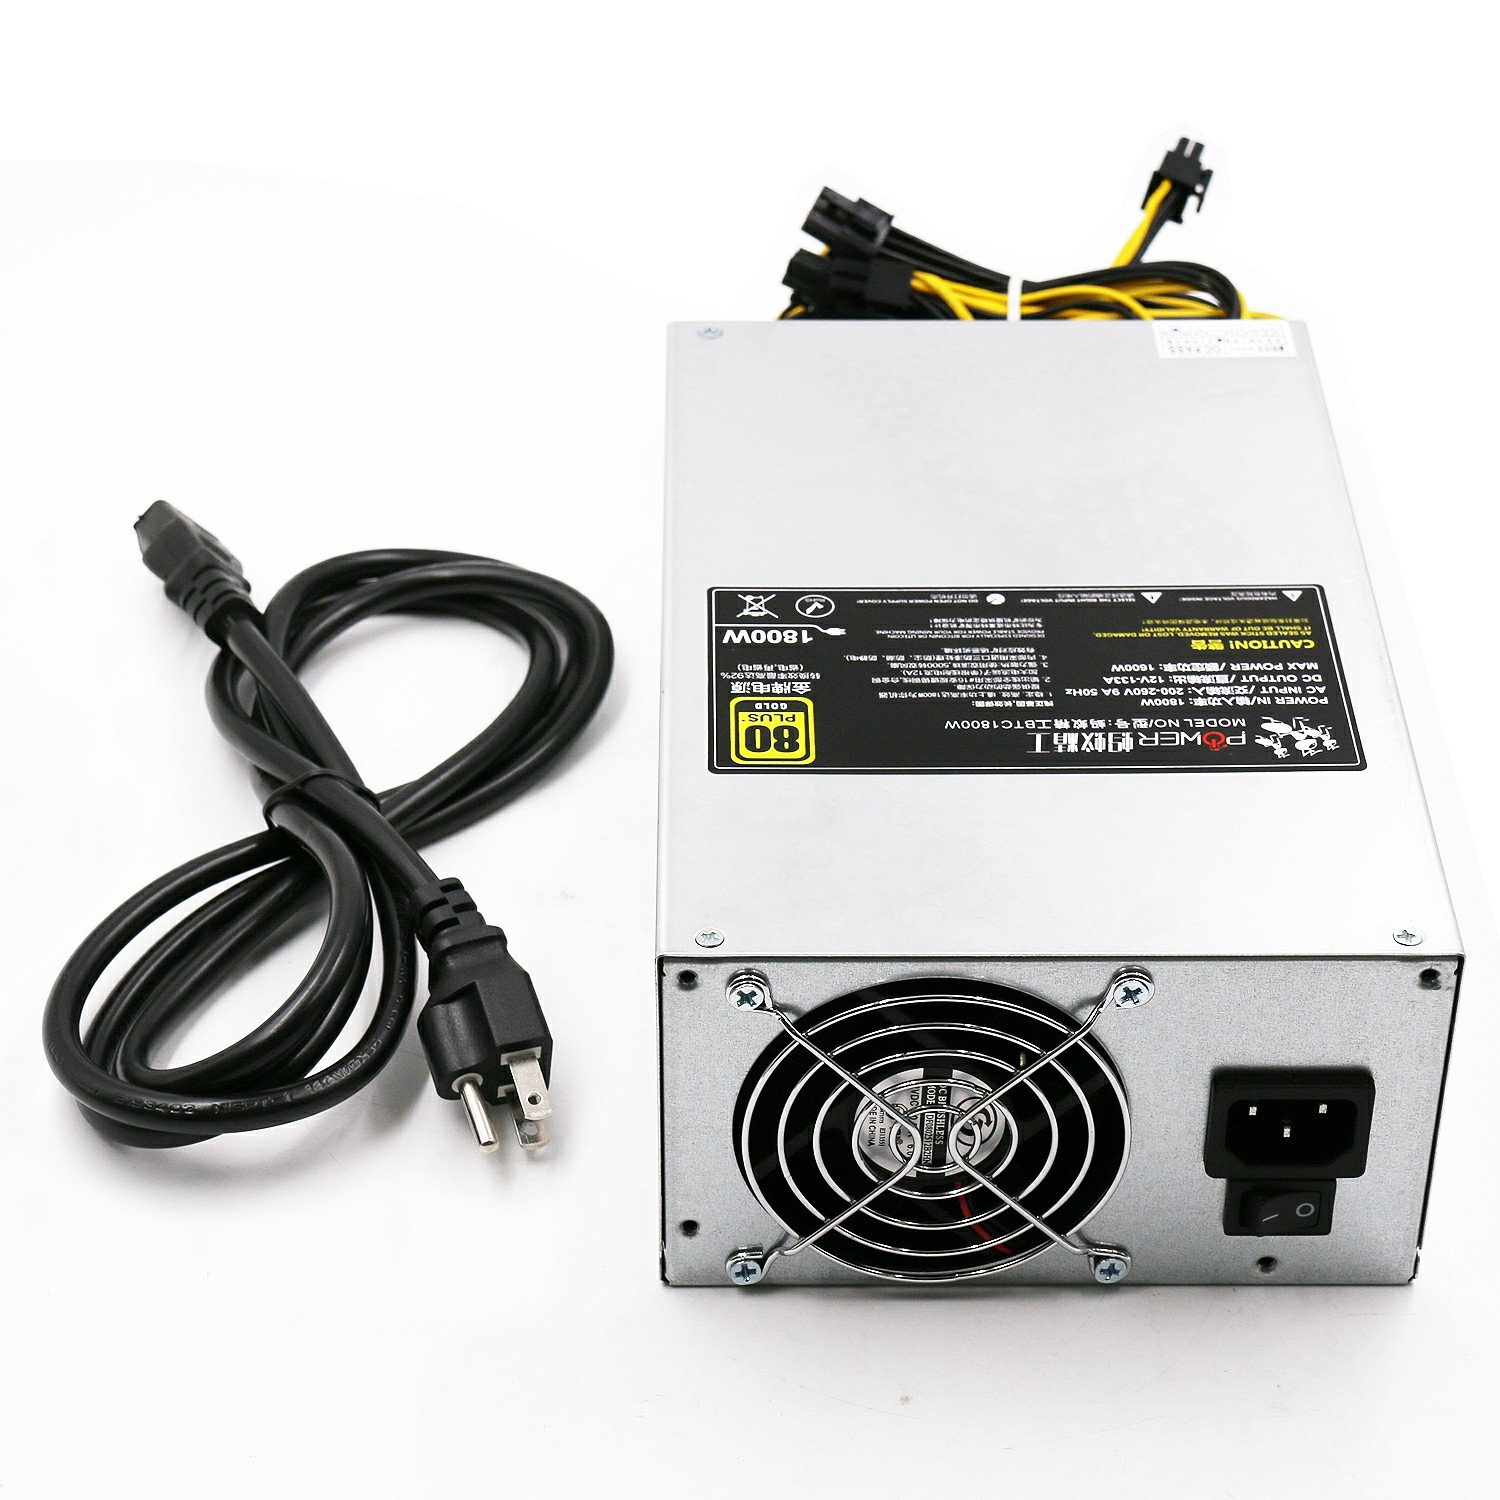 AntMiner S9 L3+ Power Supply (BTC1800W 1600W@220v 1200W@110v w/ 10 Connectors) by AntMiner